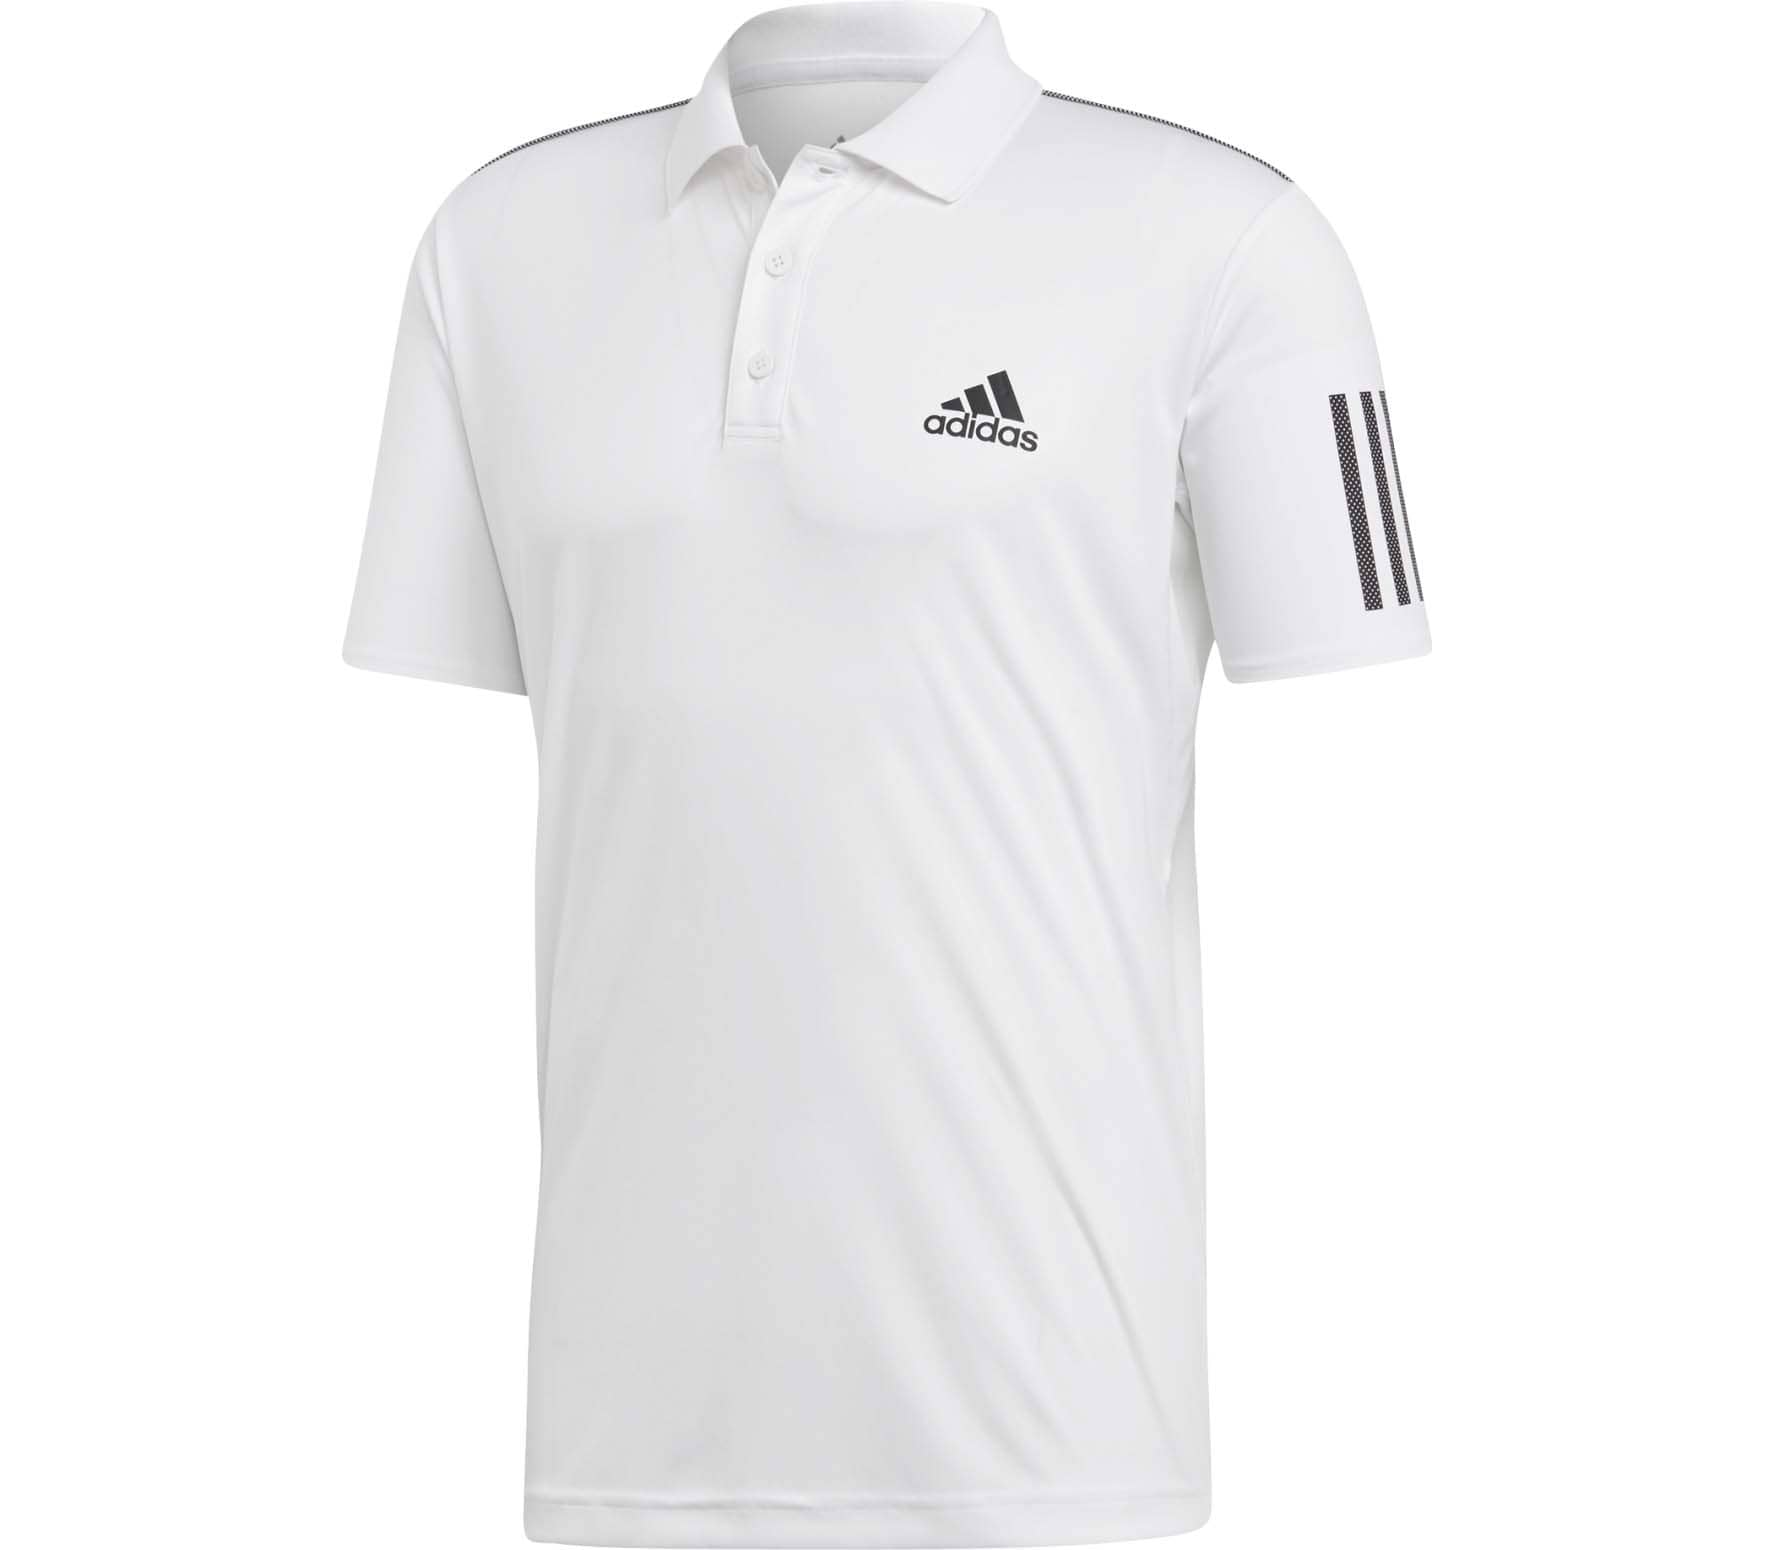 6e7a148a60a adidas Performance - Club 3 Stripes men s tennis polo top (white black)